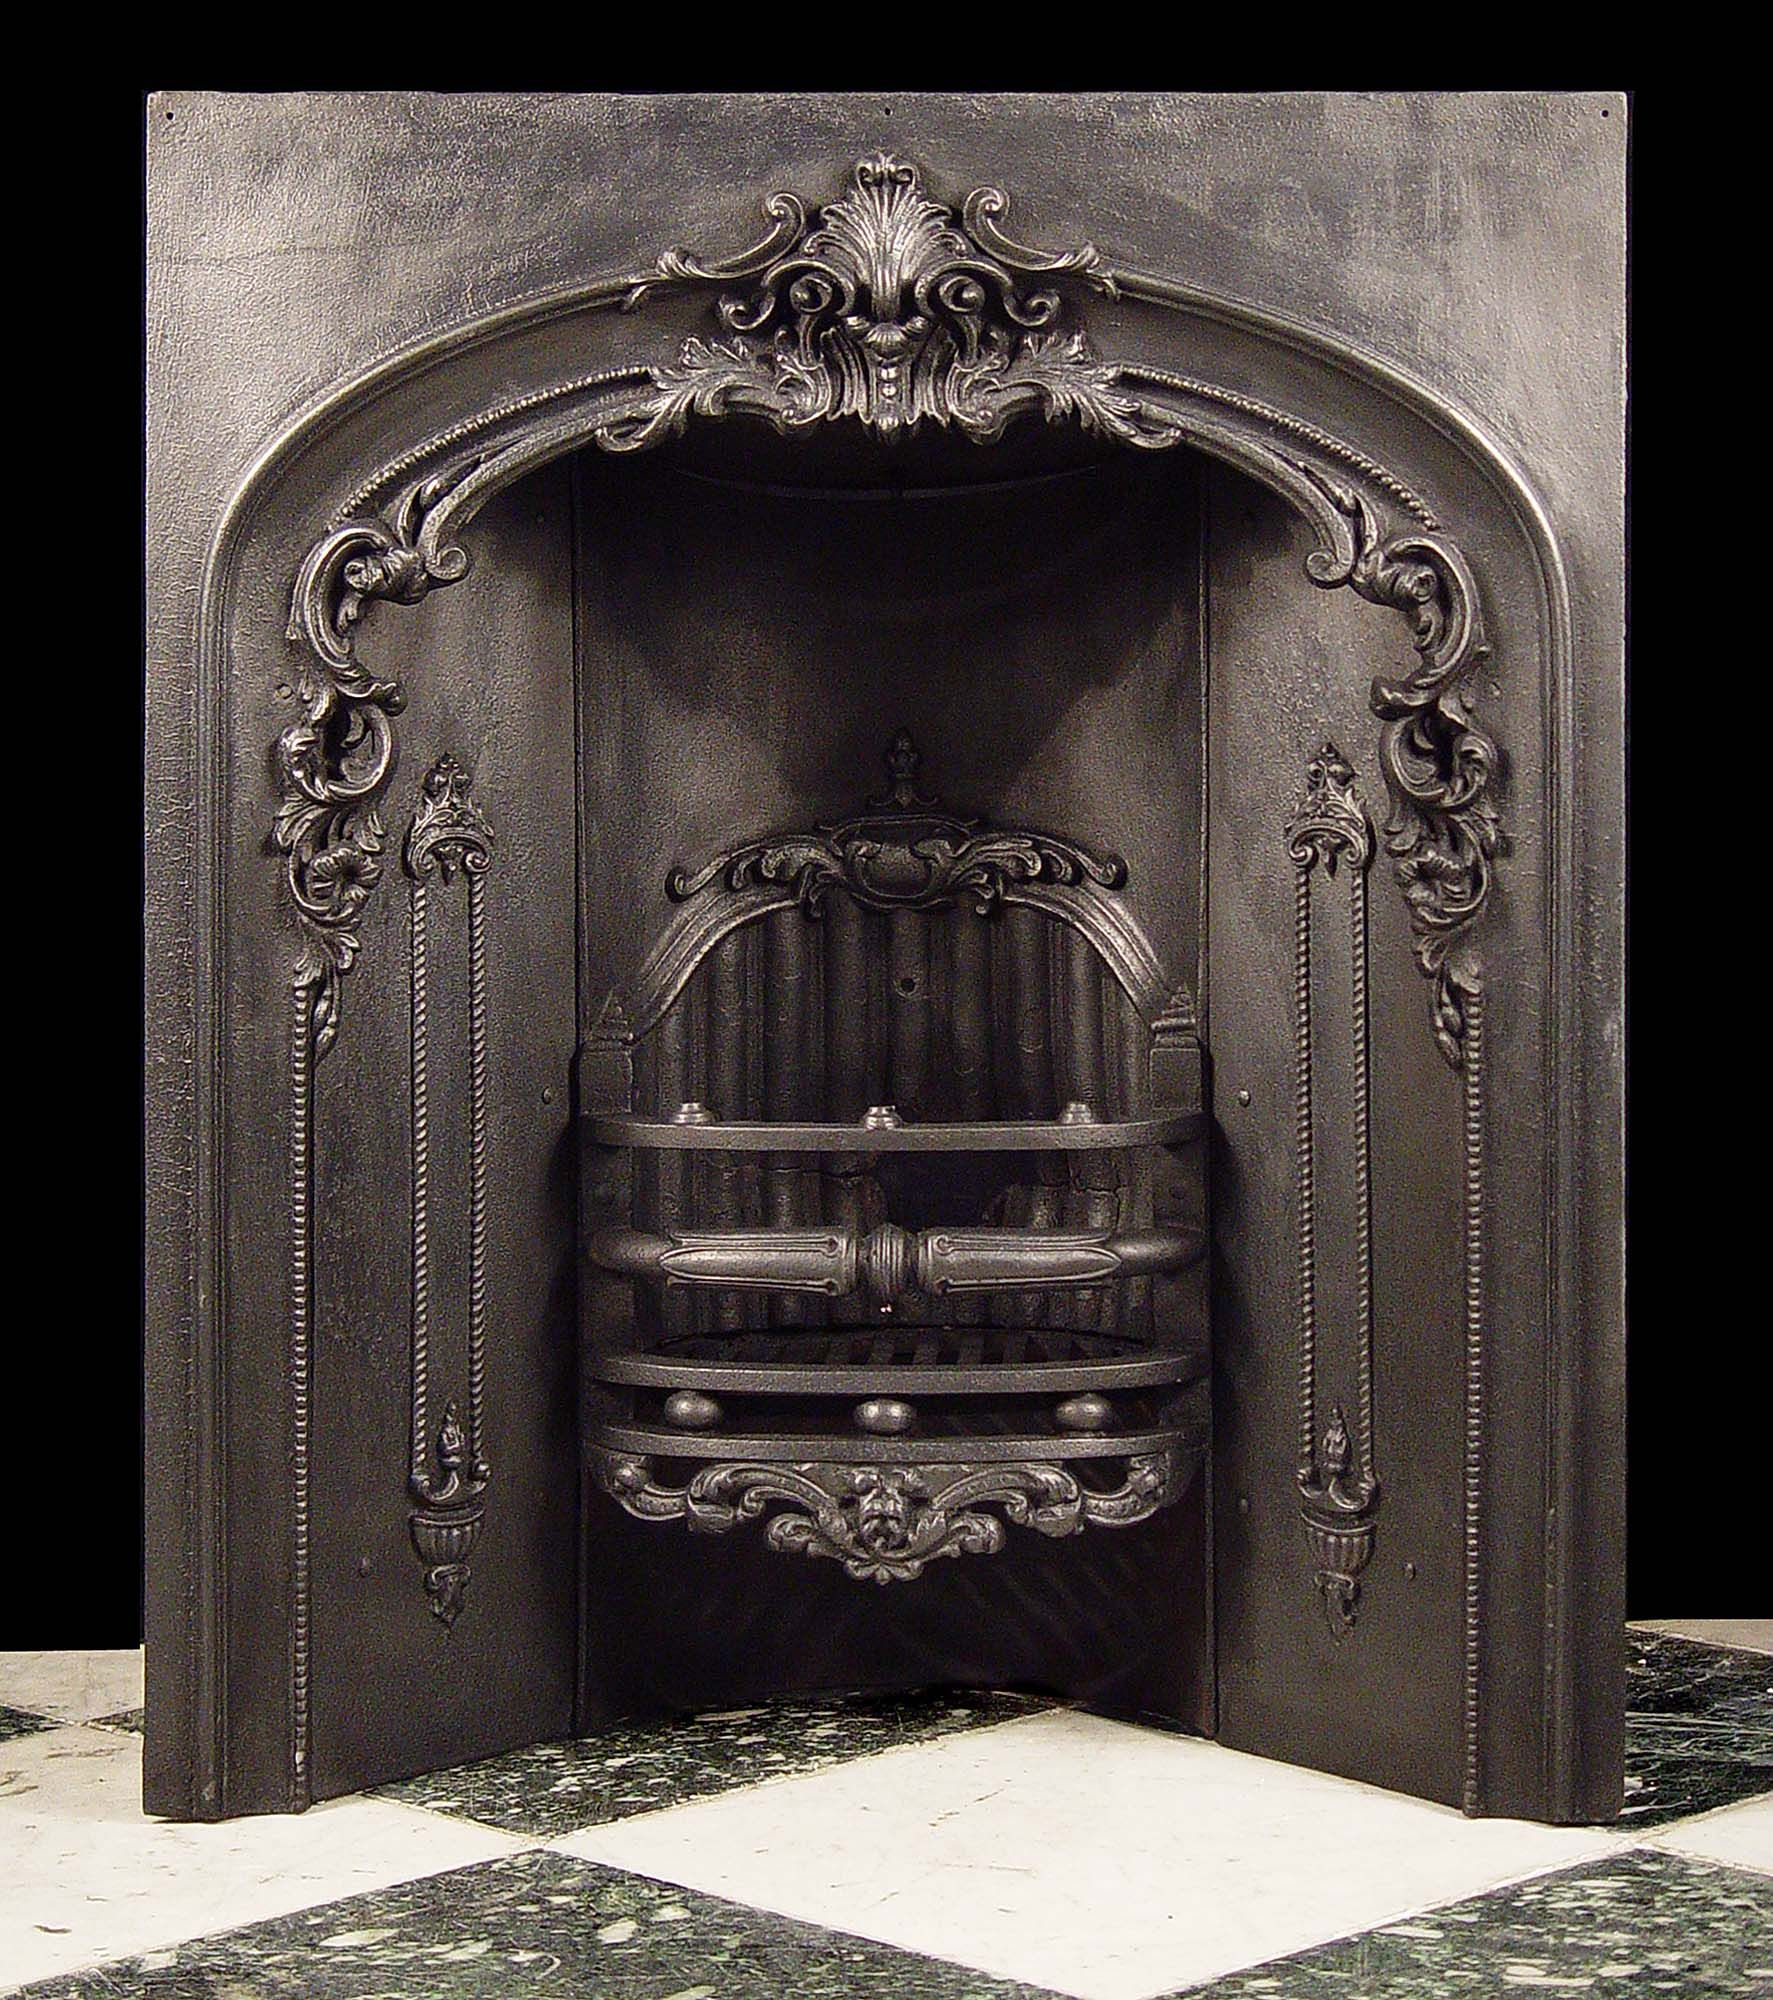 Antique Vintage Bedroom Fireplace: Something Like This For The Corner Fireplace In The Living Room. -- Antique Victorian Cast Iron